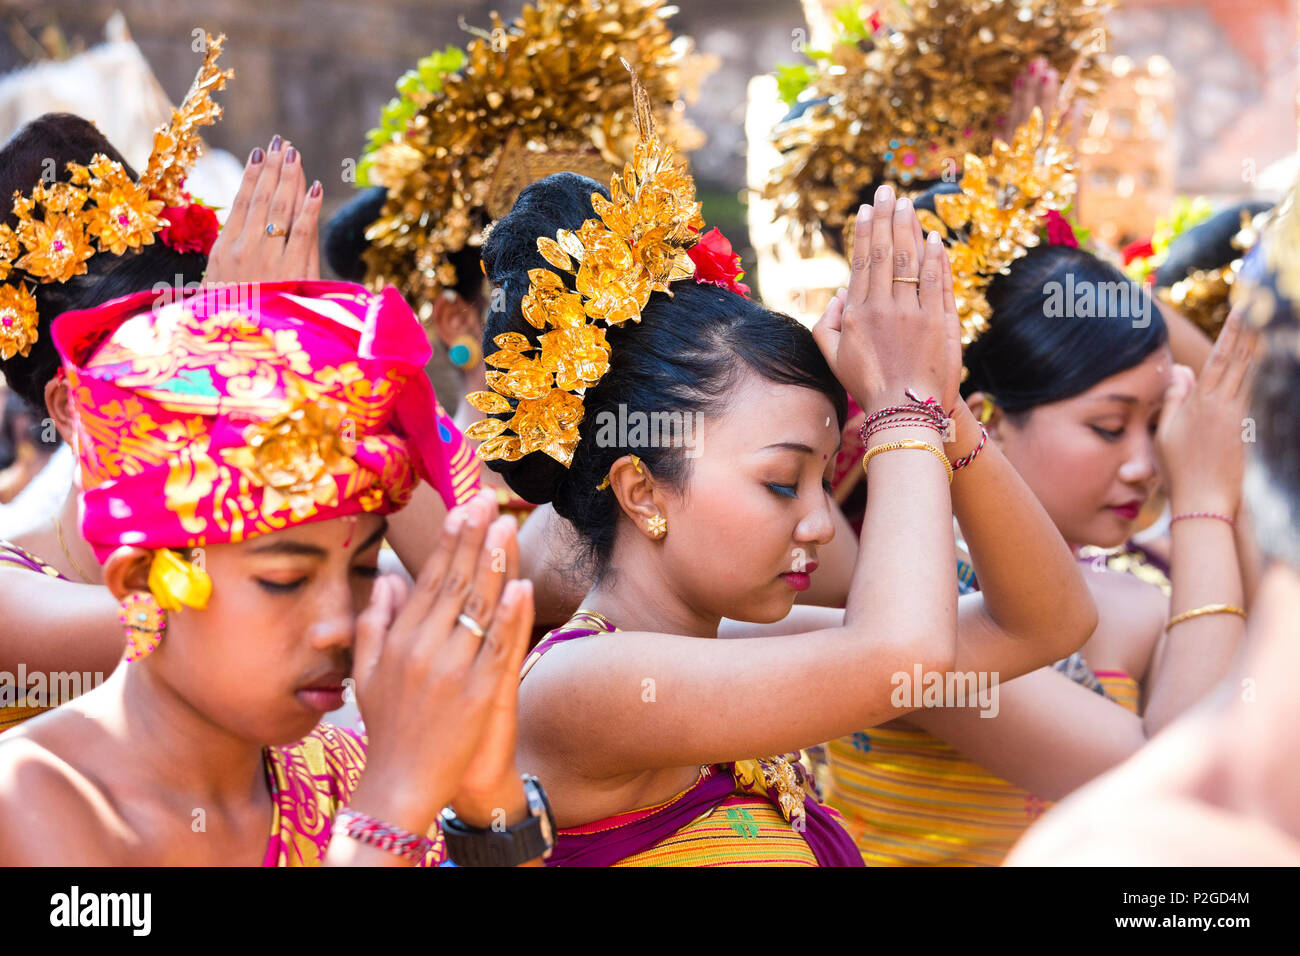 Balinese People Praying Odalan Temple Festival Sidemen